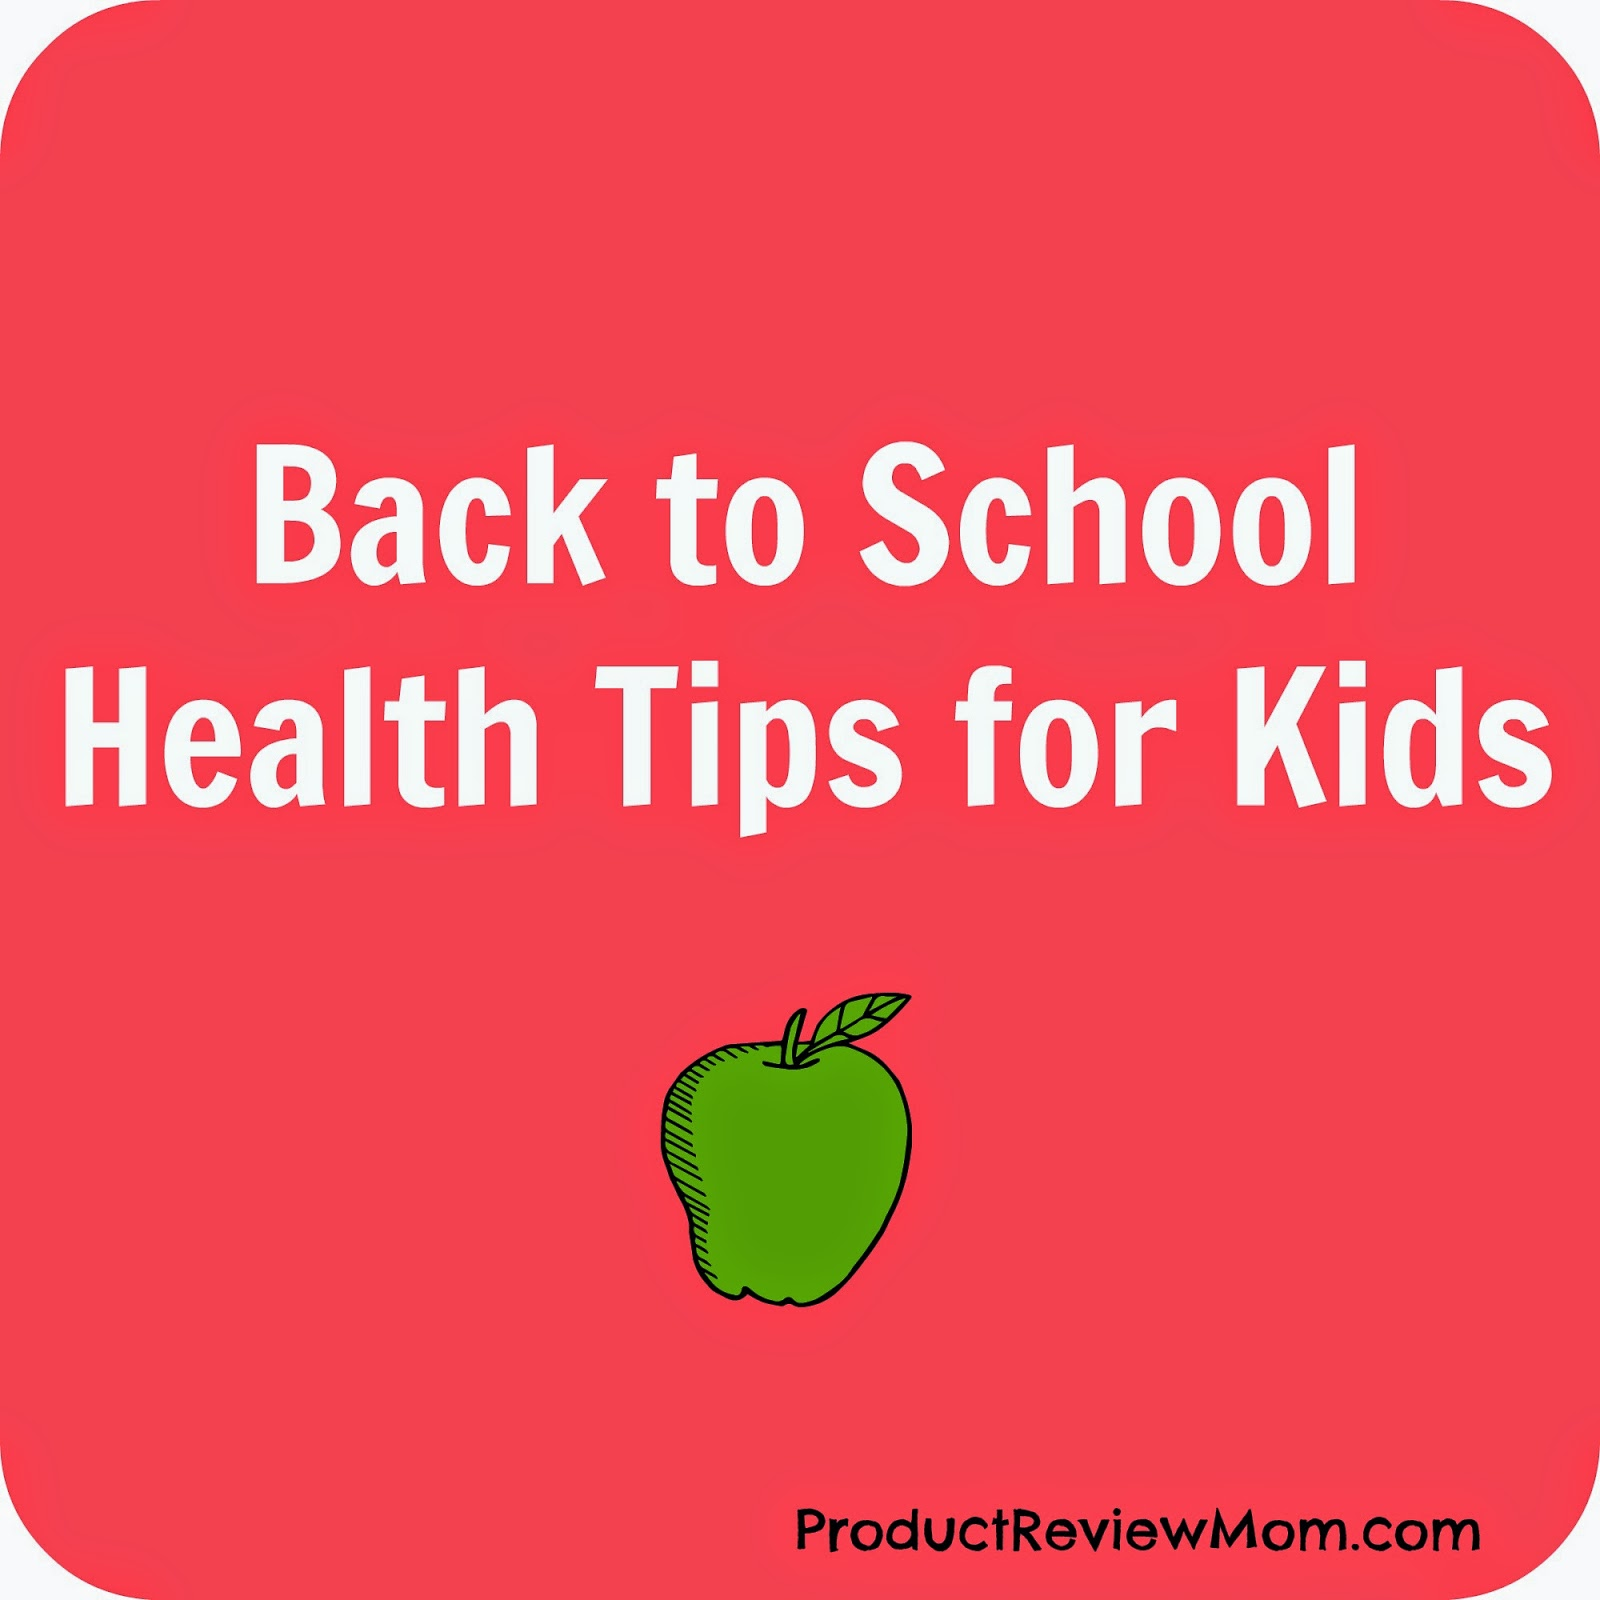 Back+to+School+Health+Tips+for+Kids.jpg